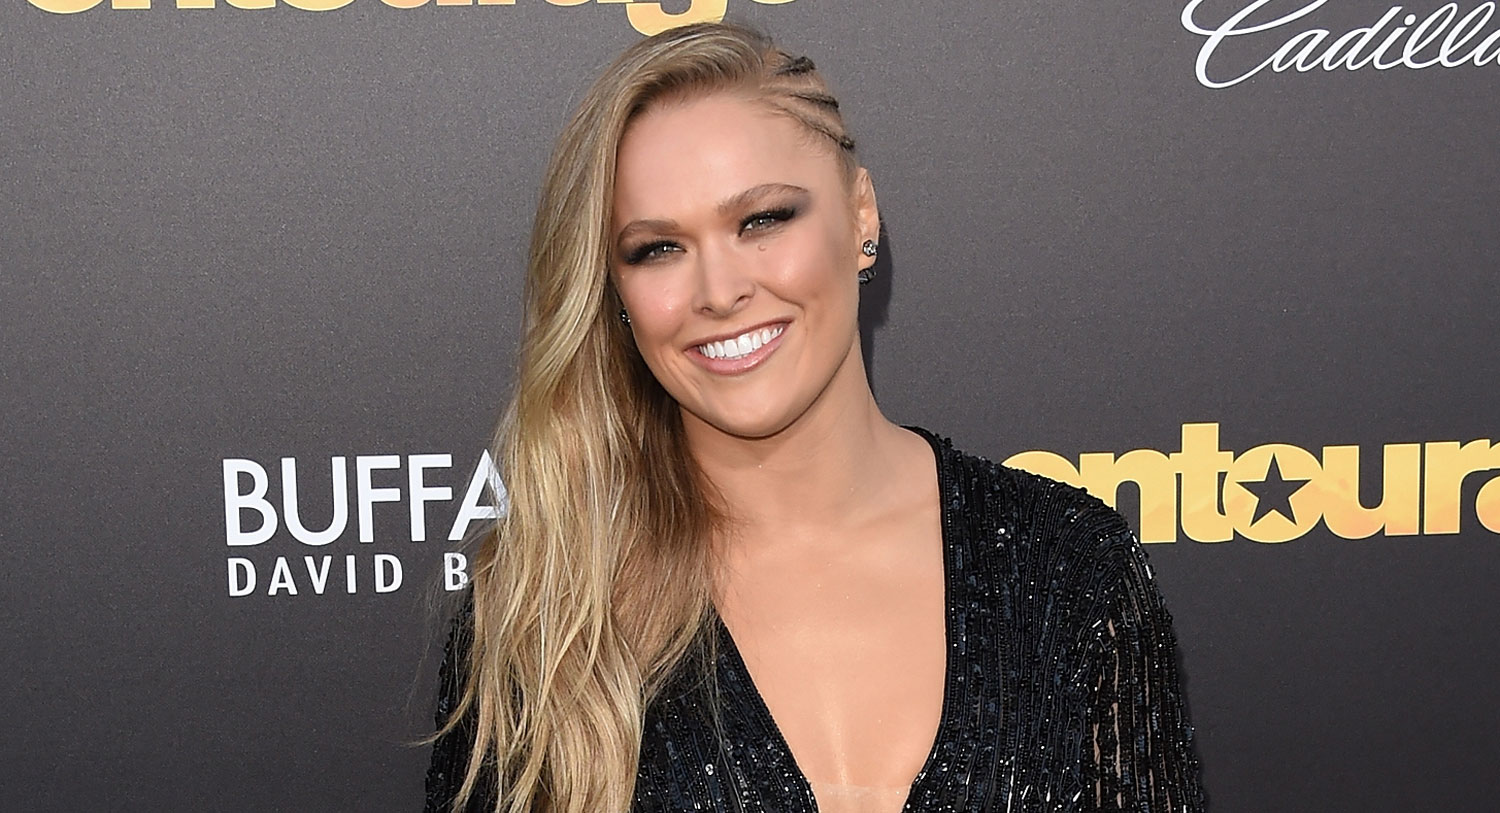 Awesome ronda rousey wallpaper full hd pictures - Ronda rousey wallpaper ...